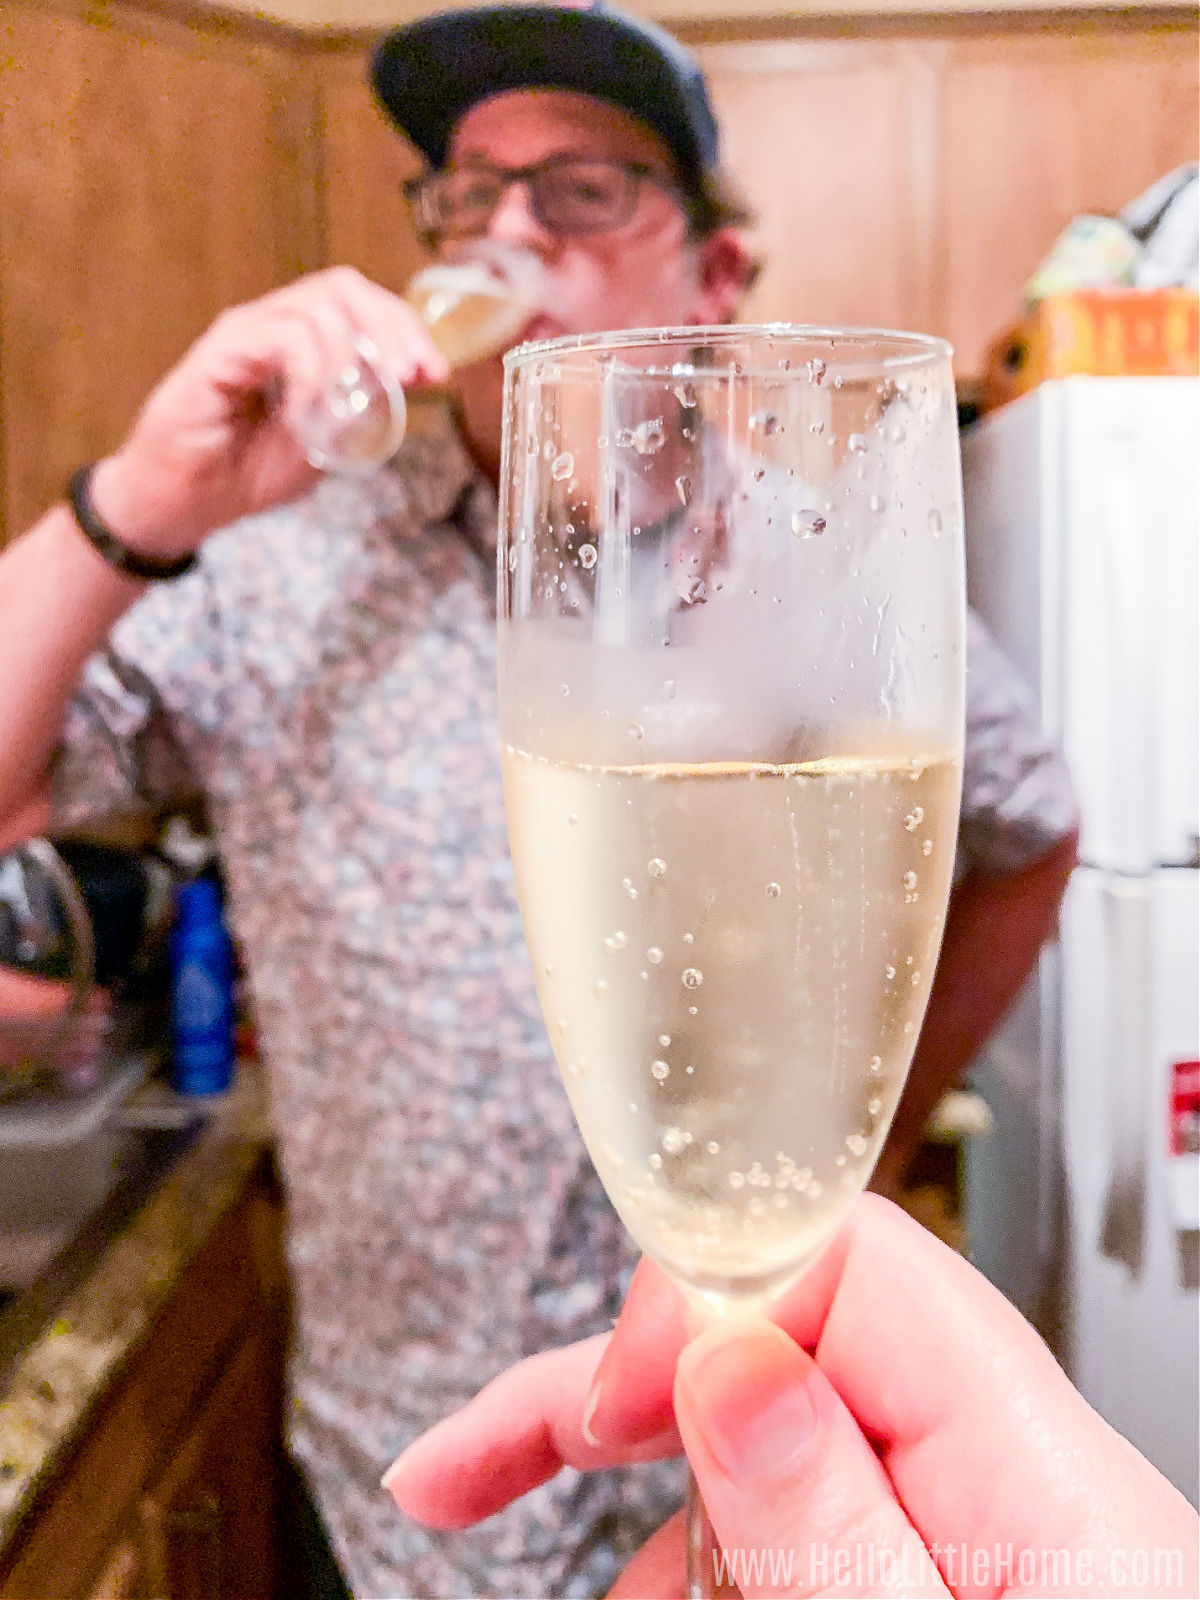 A hand holding a champagne flute in front of a man drinking champagne.